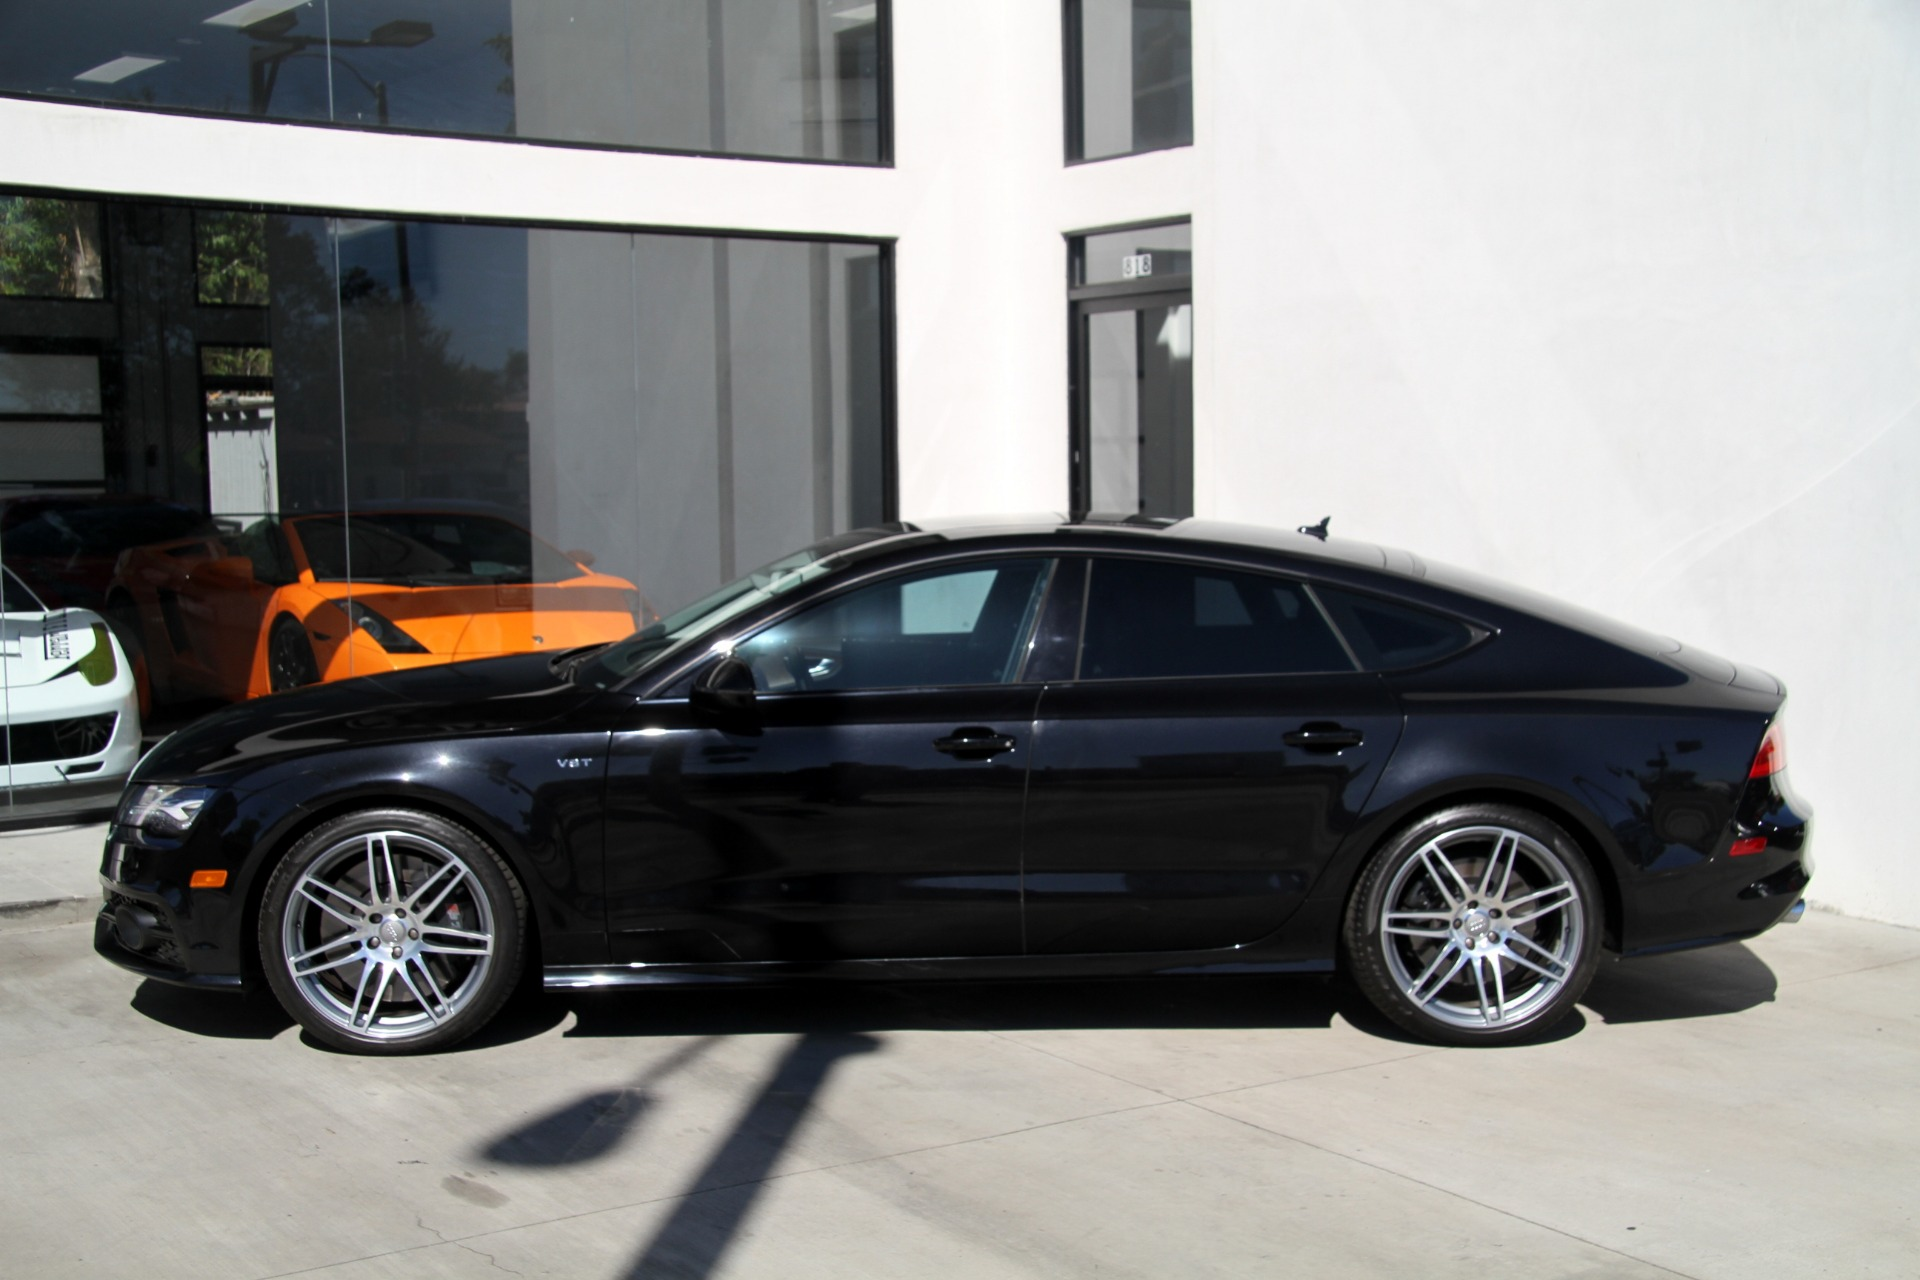 2014 Audi S7 4 0t Quattro Stock 6264 For Sale Near